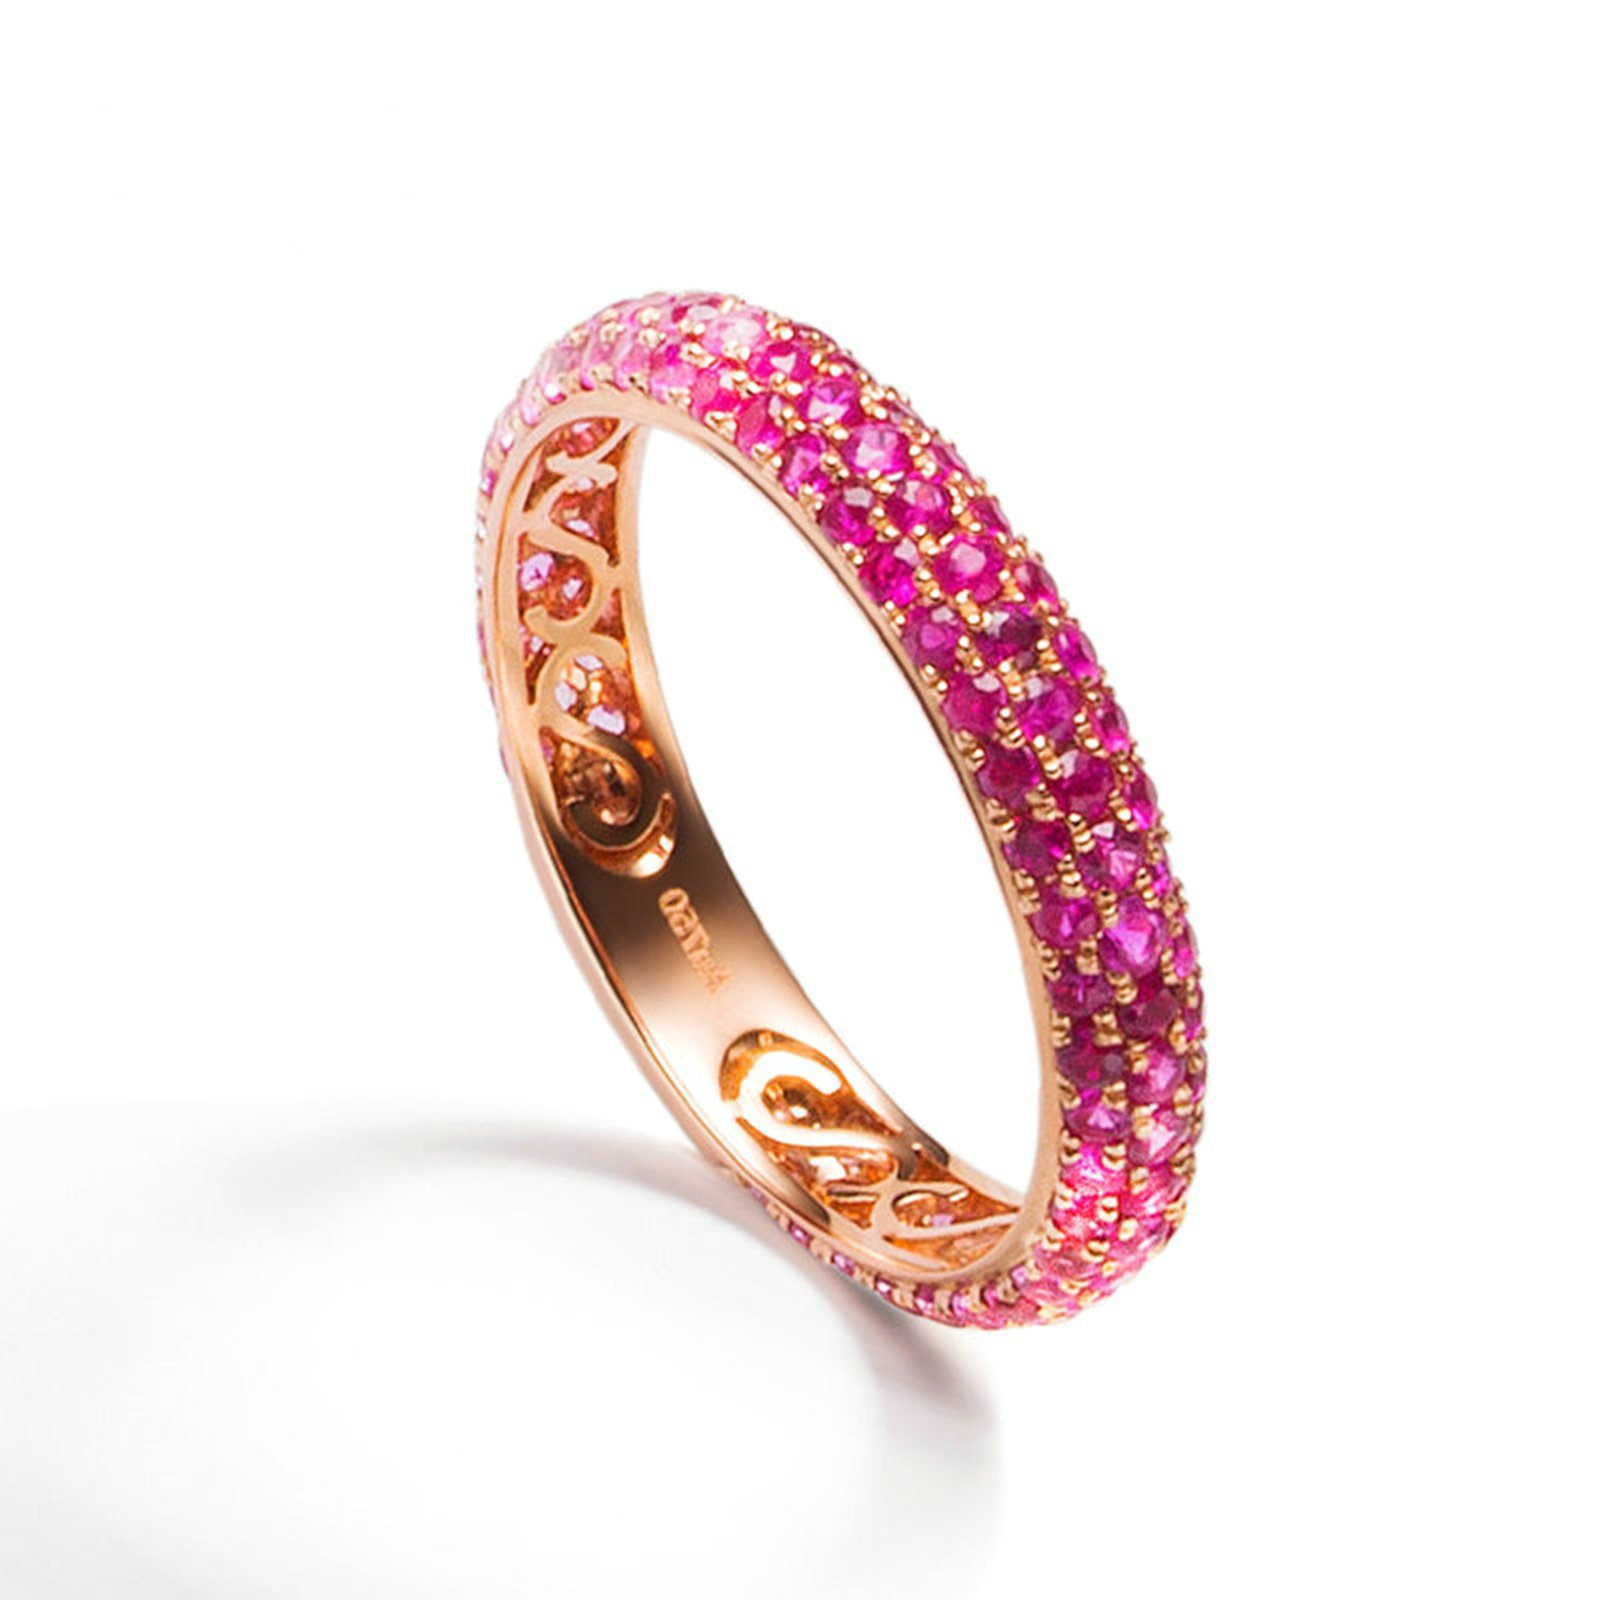 Gnzoe Rose Gold Women Wedding Rings Solitaire Promise Rings Rose Gold with Red Rubin Size 6.5